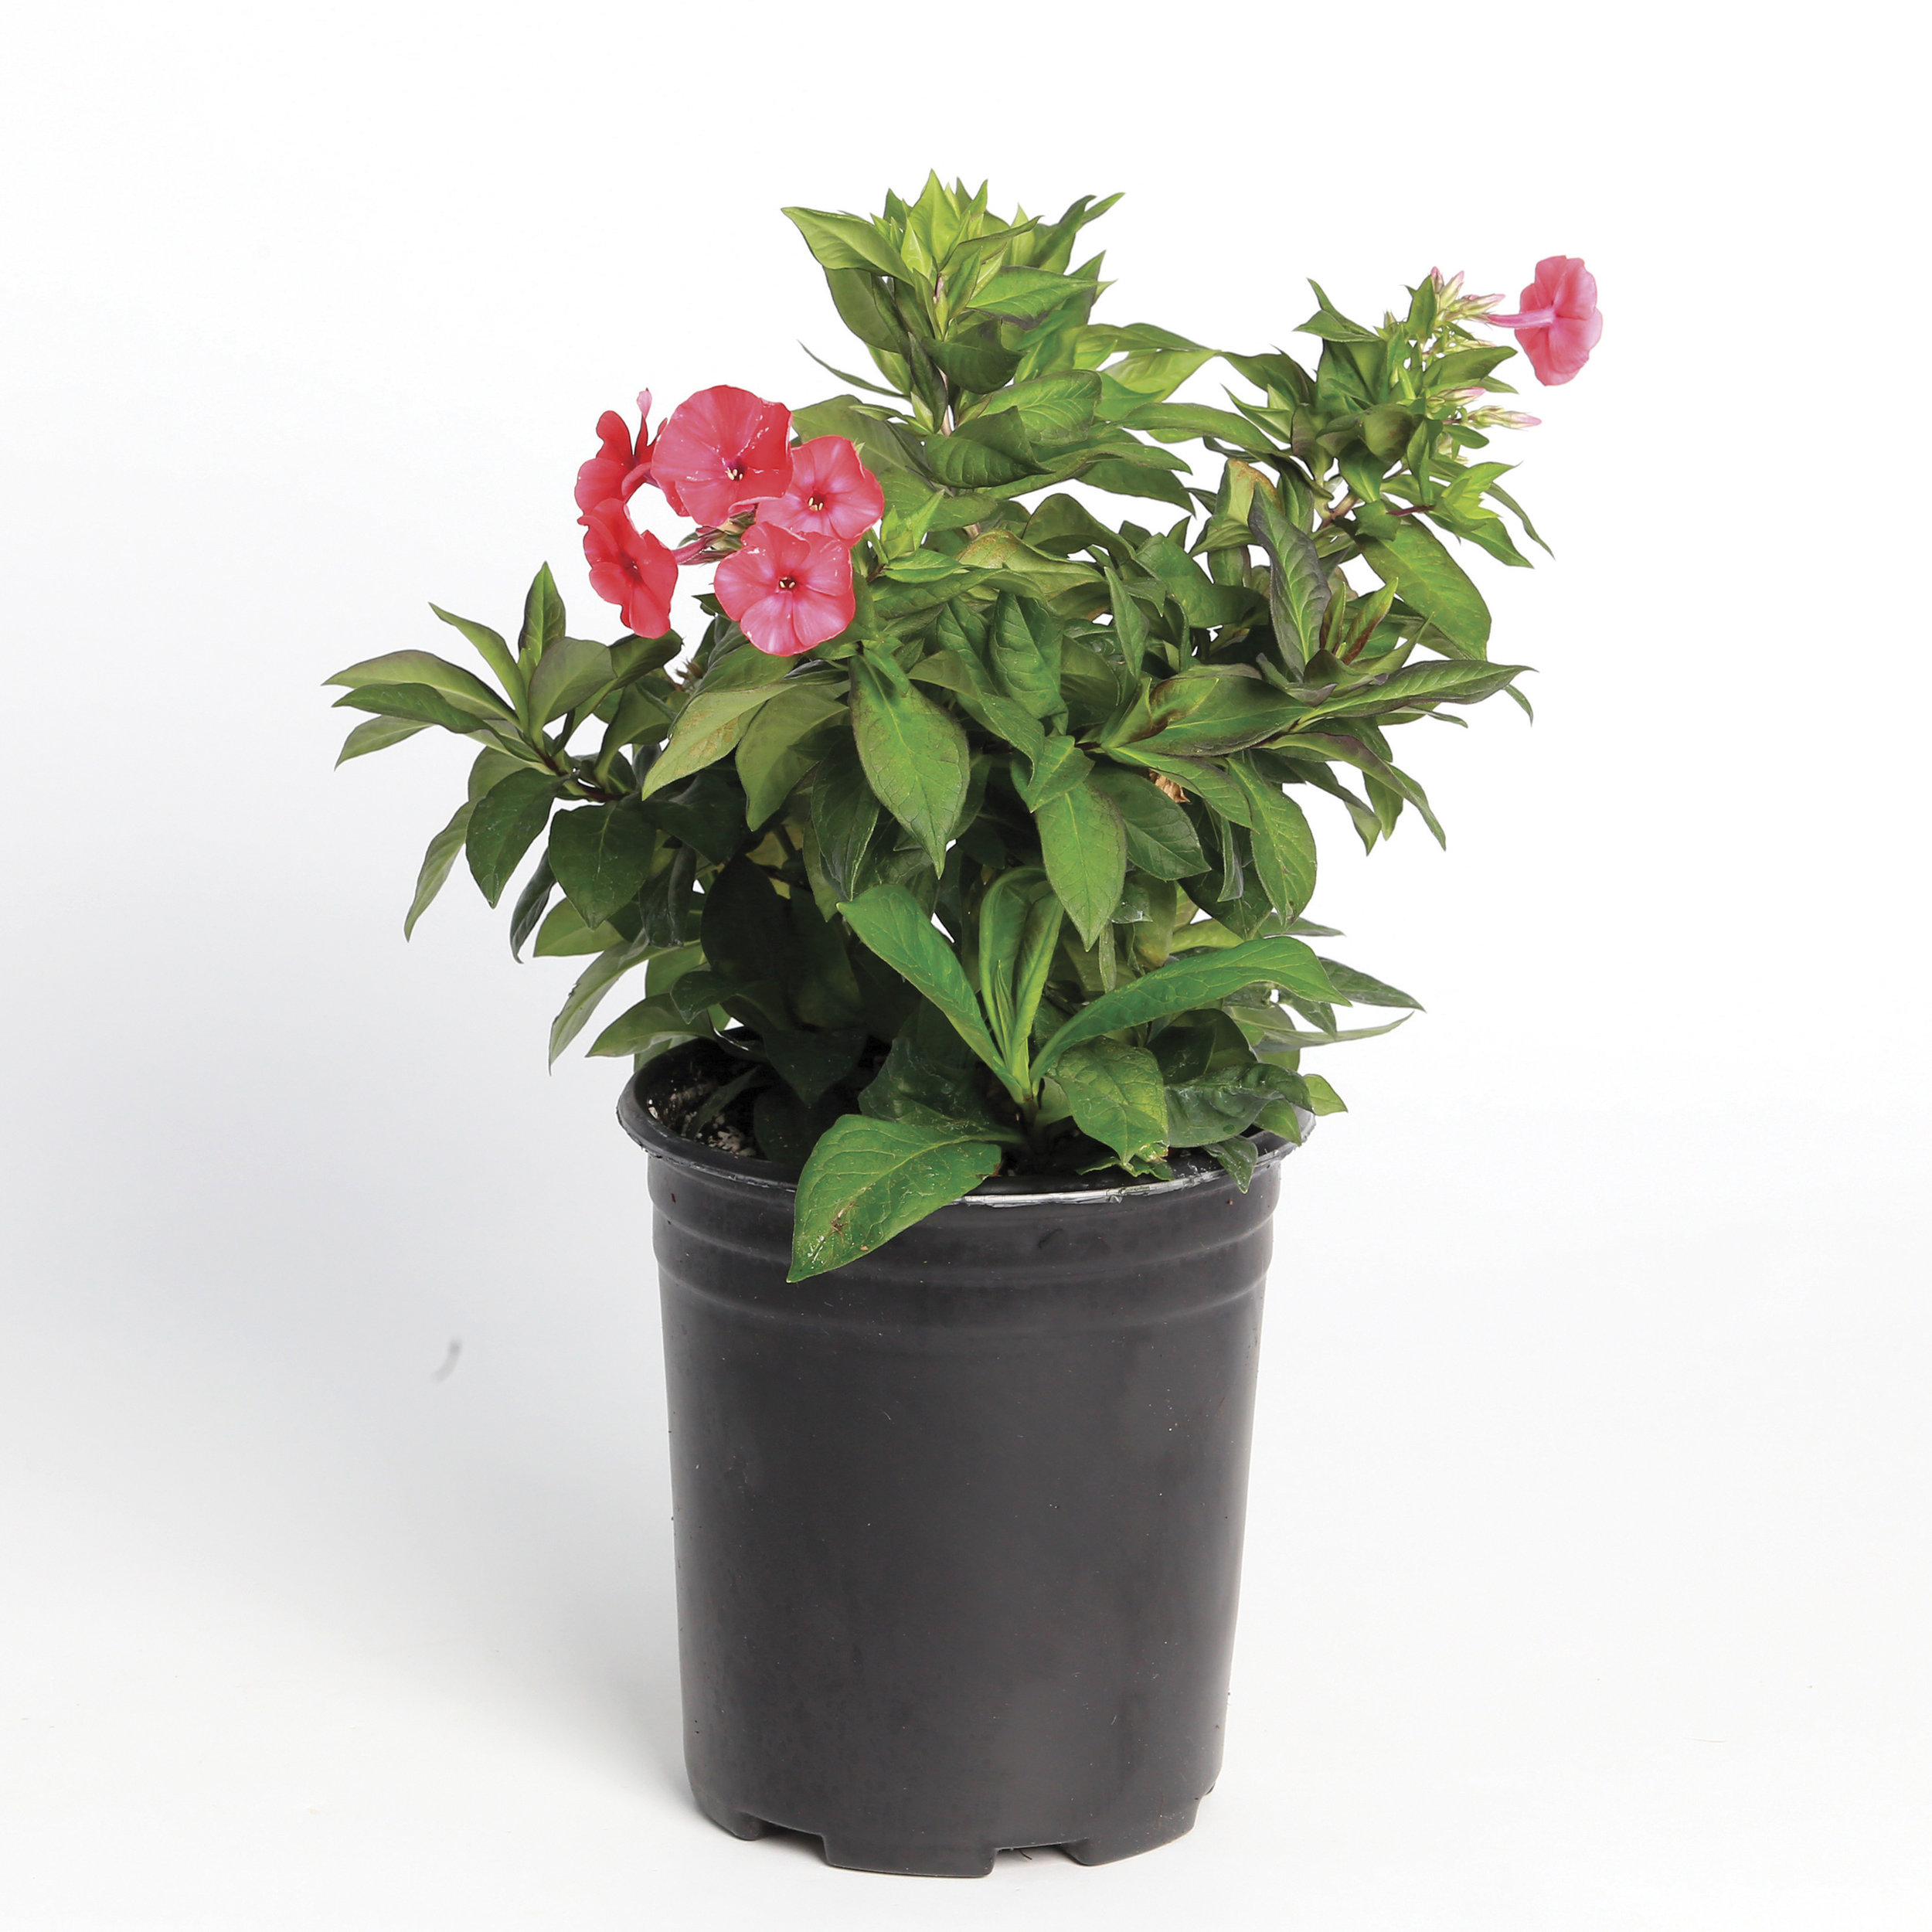 HR_Vegetative_Phlox_Peacock__Peacock__Cherry_Red_70004219.jpg